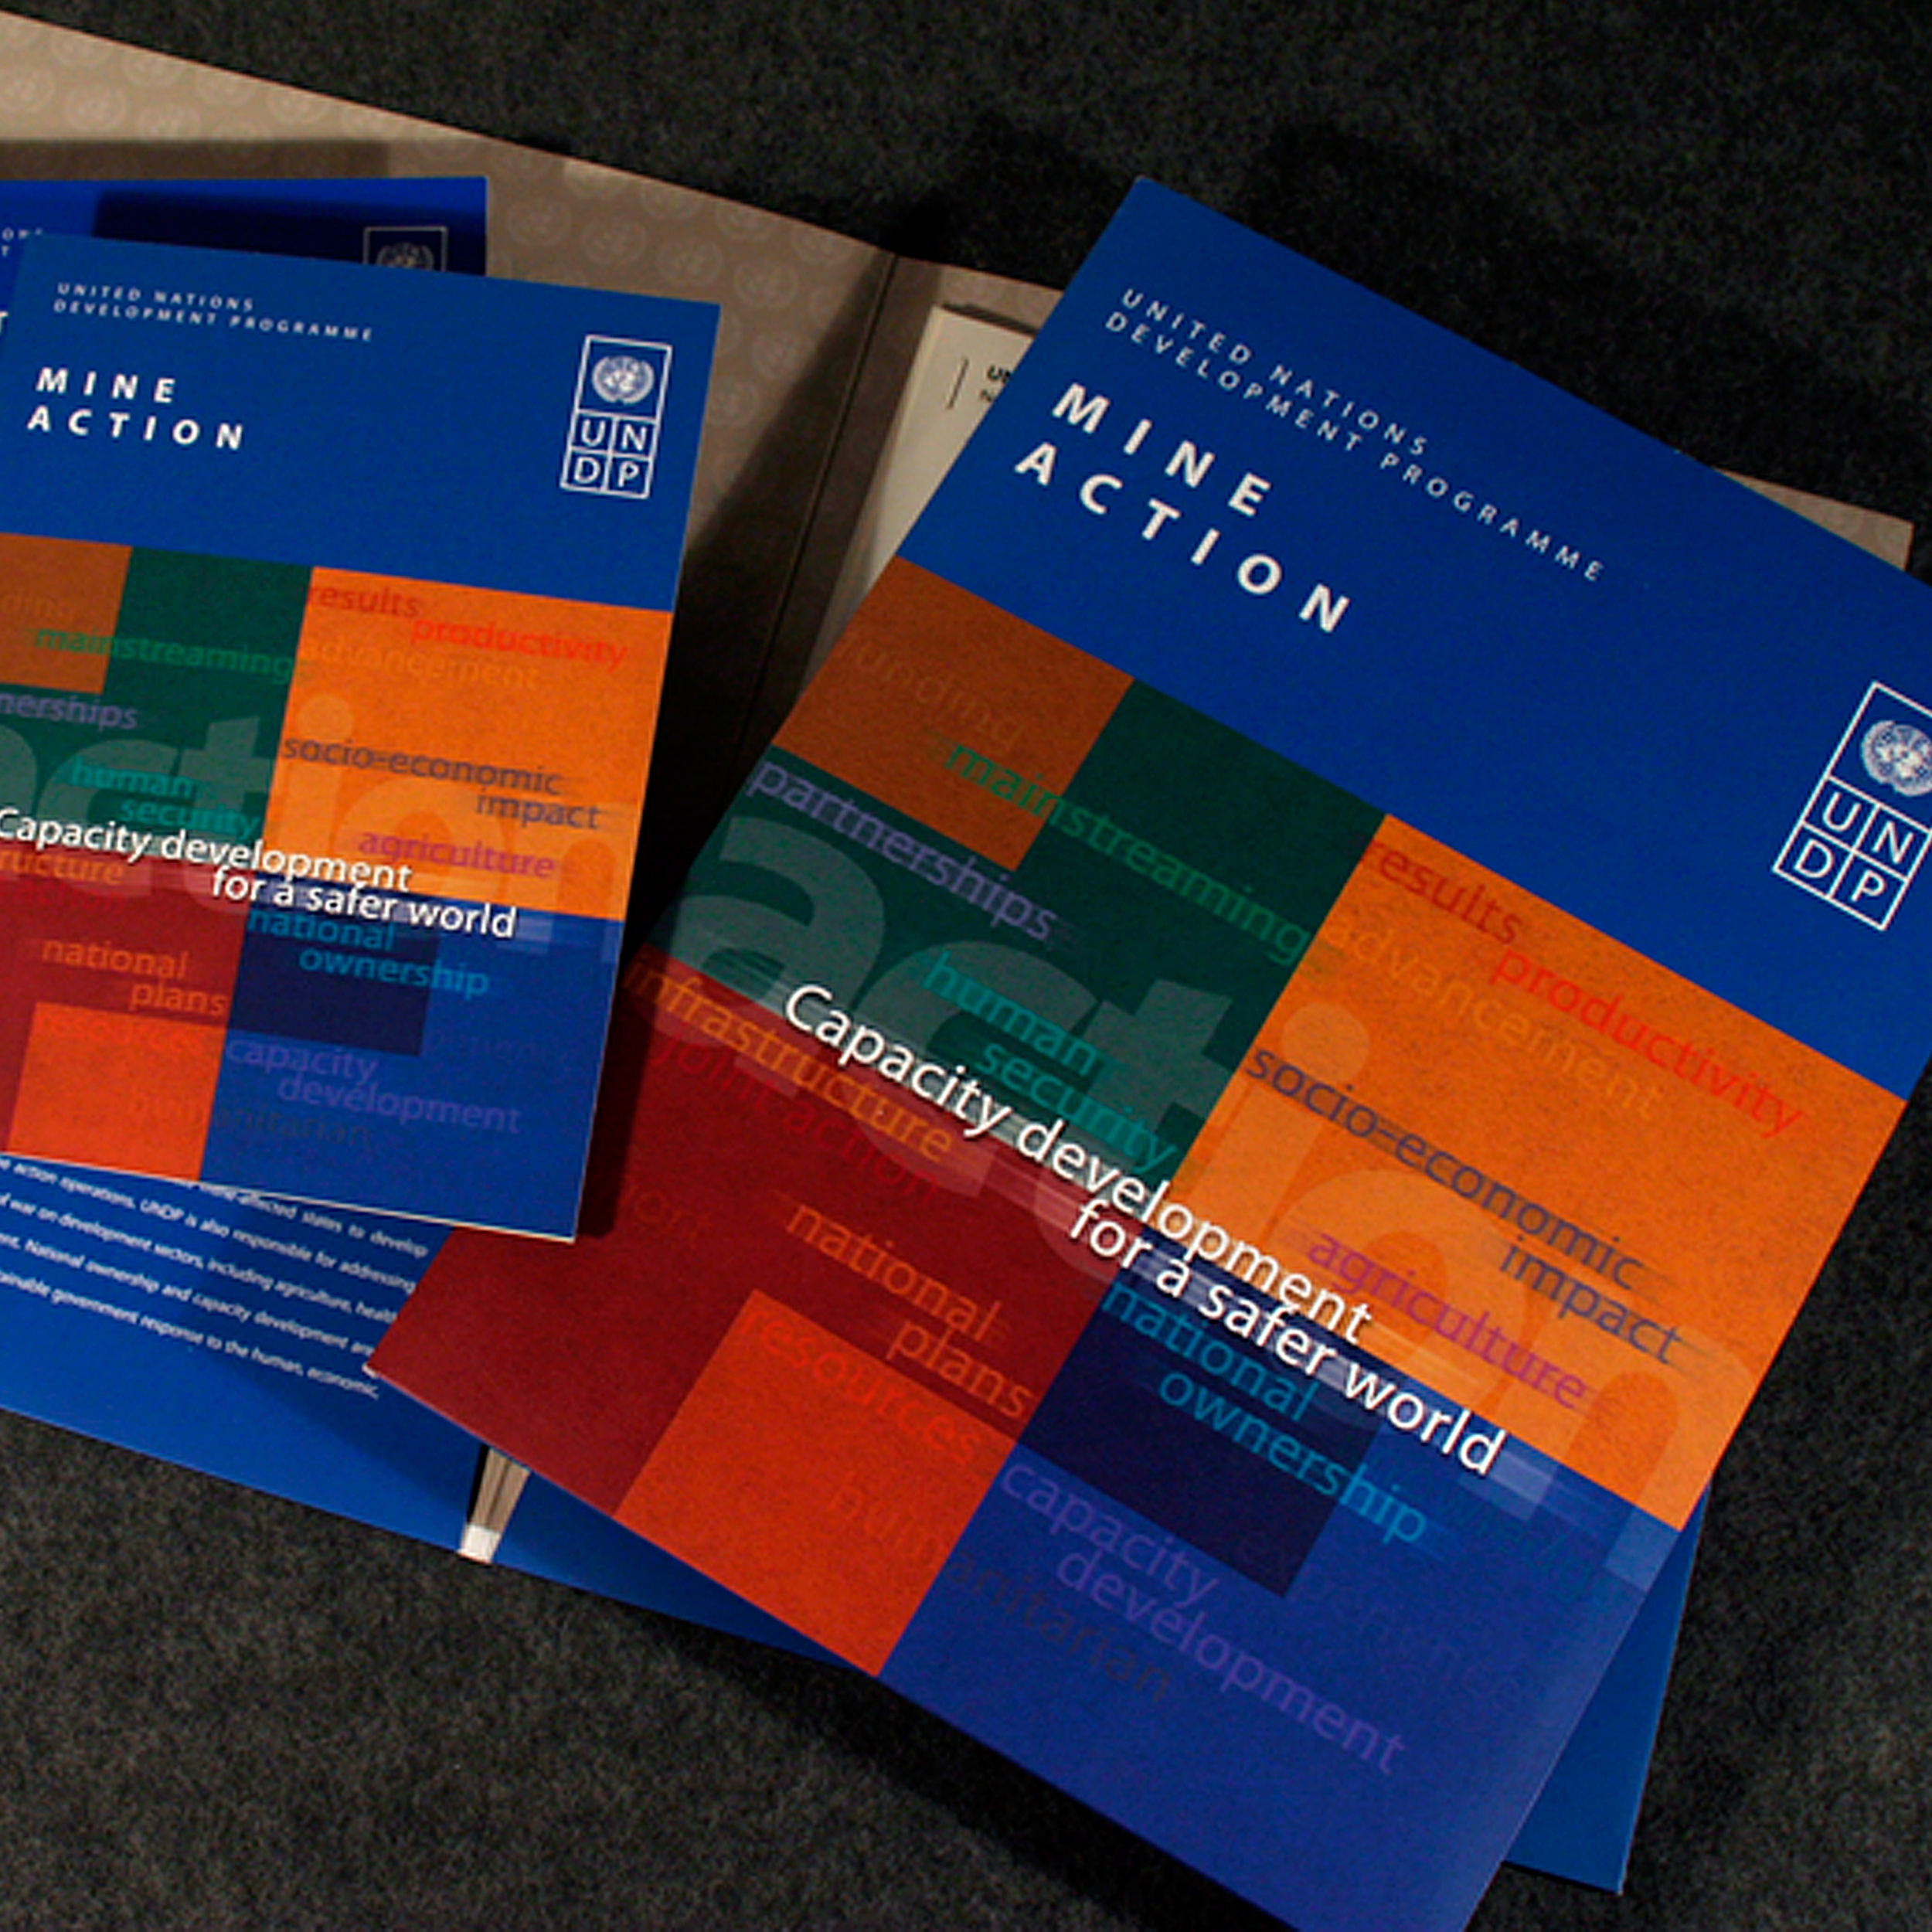 Mine Action – Conference Package   An informative and fundraising package for UNDP Mine Action section, first designed for a conference, then continued as a informative and fundraising package.